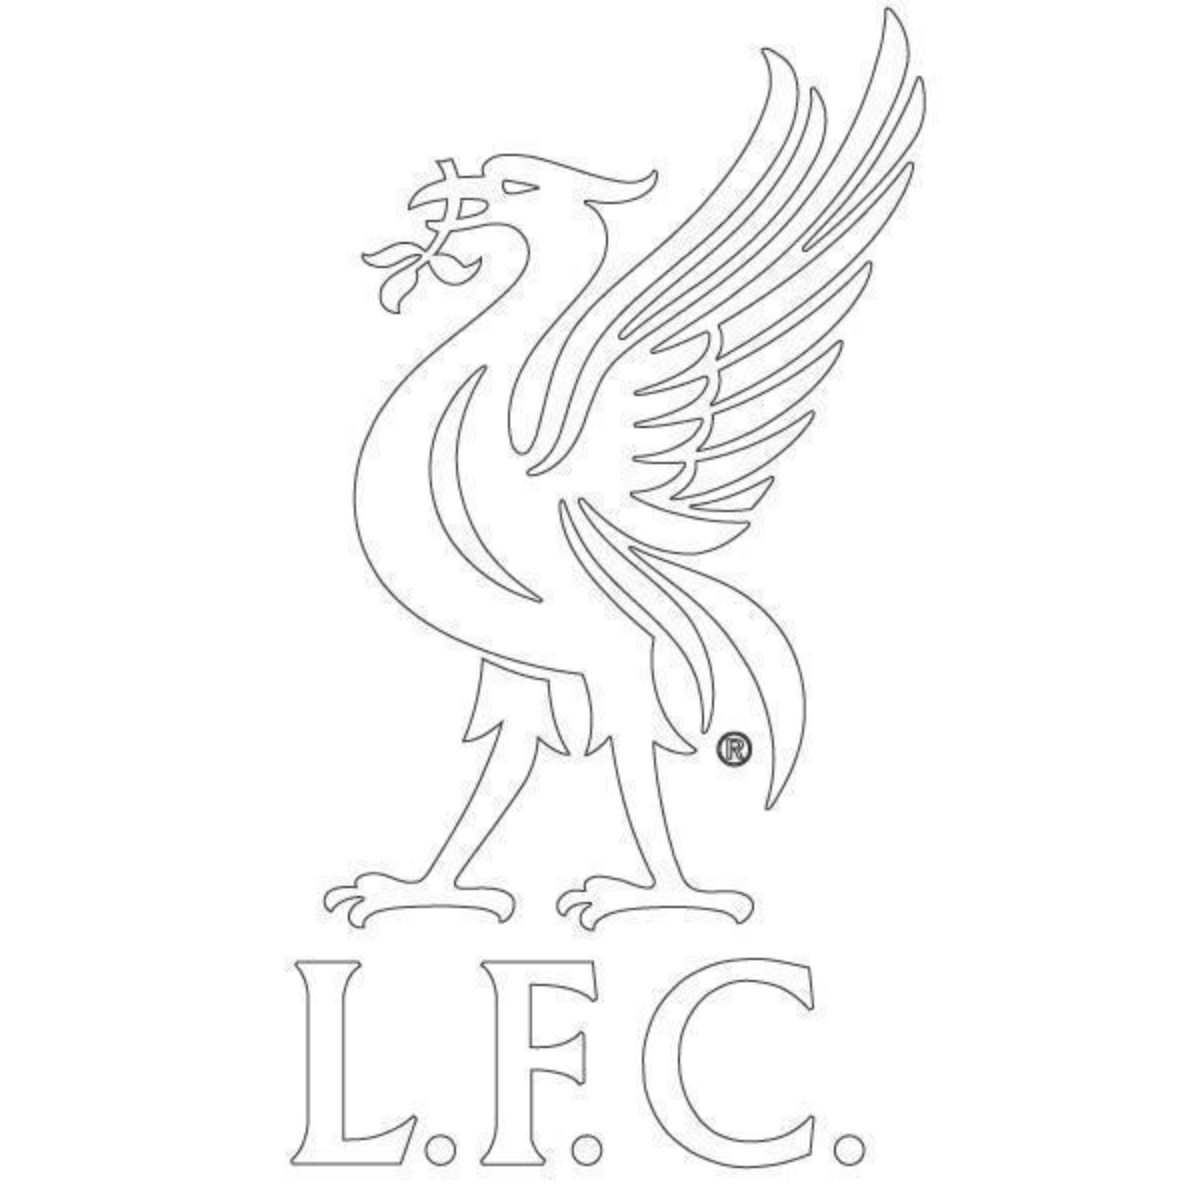 Liverpool FC White Liverbird Decal